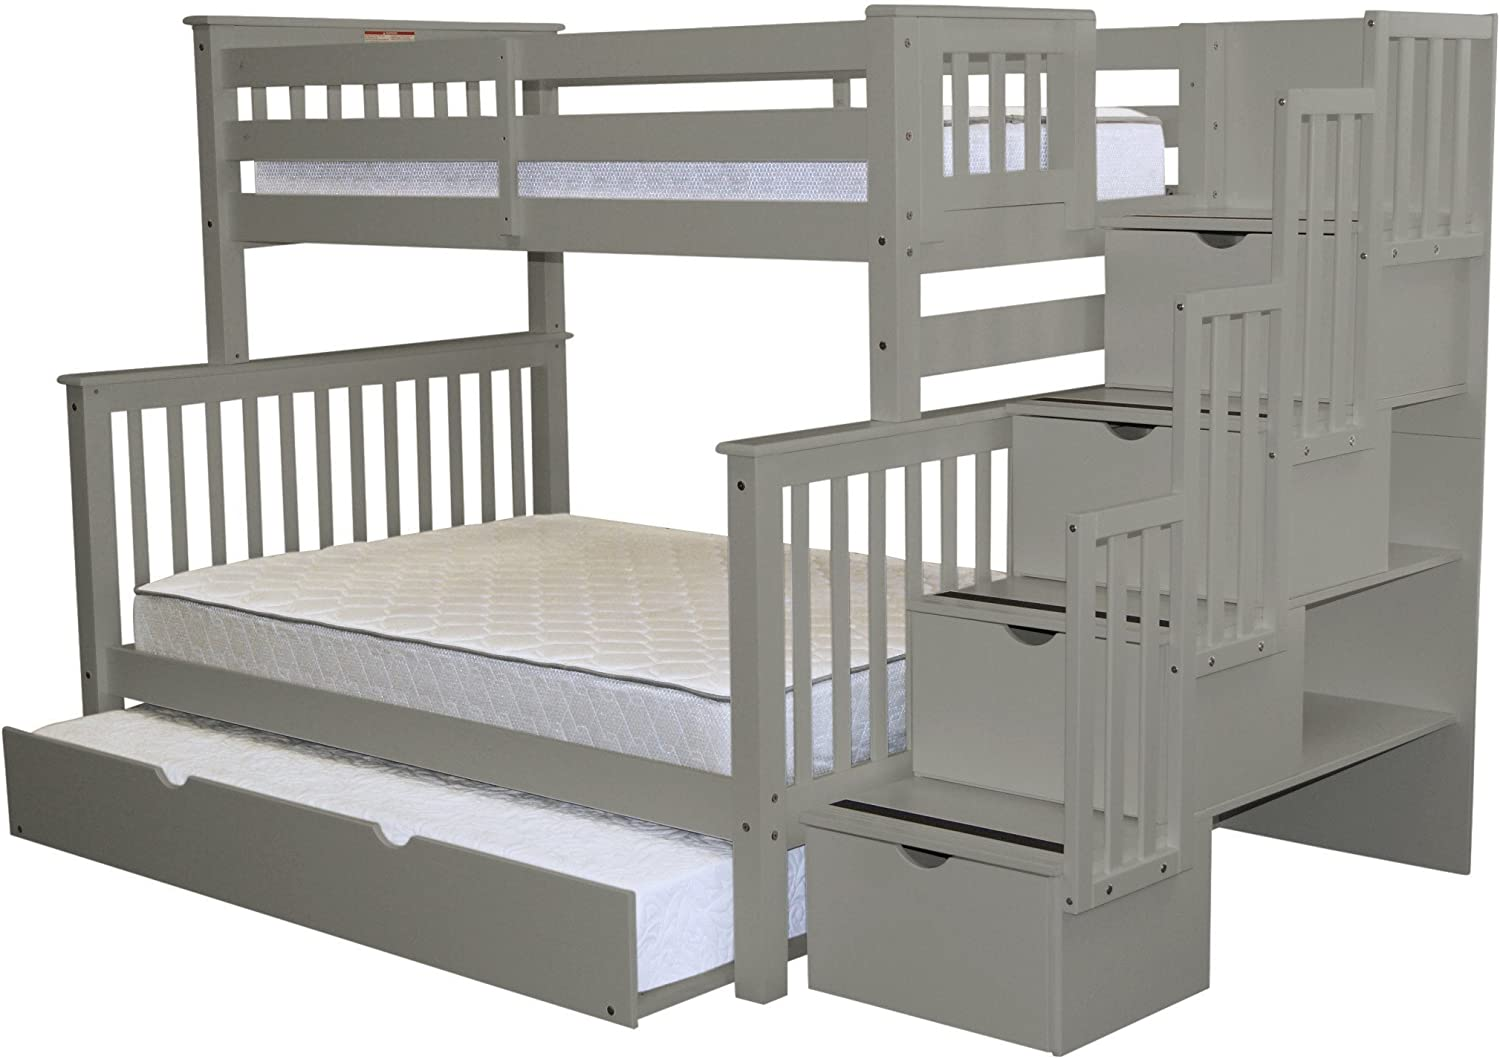 Buy Bedz King Stairway Bunk Beds Twin Over Full With 4 Drawers In The Steps And A Full Trundle Gray Online In Turkey B01f26deeu